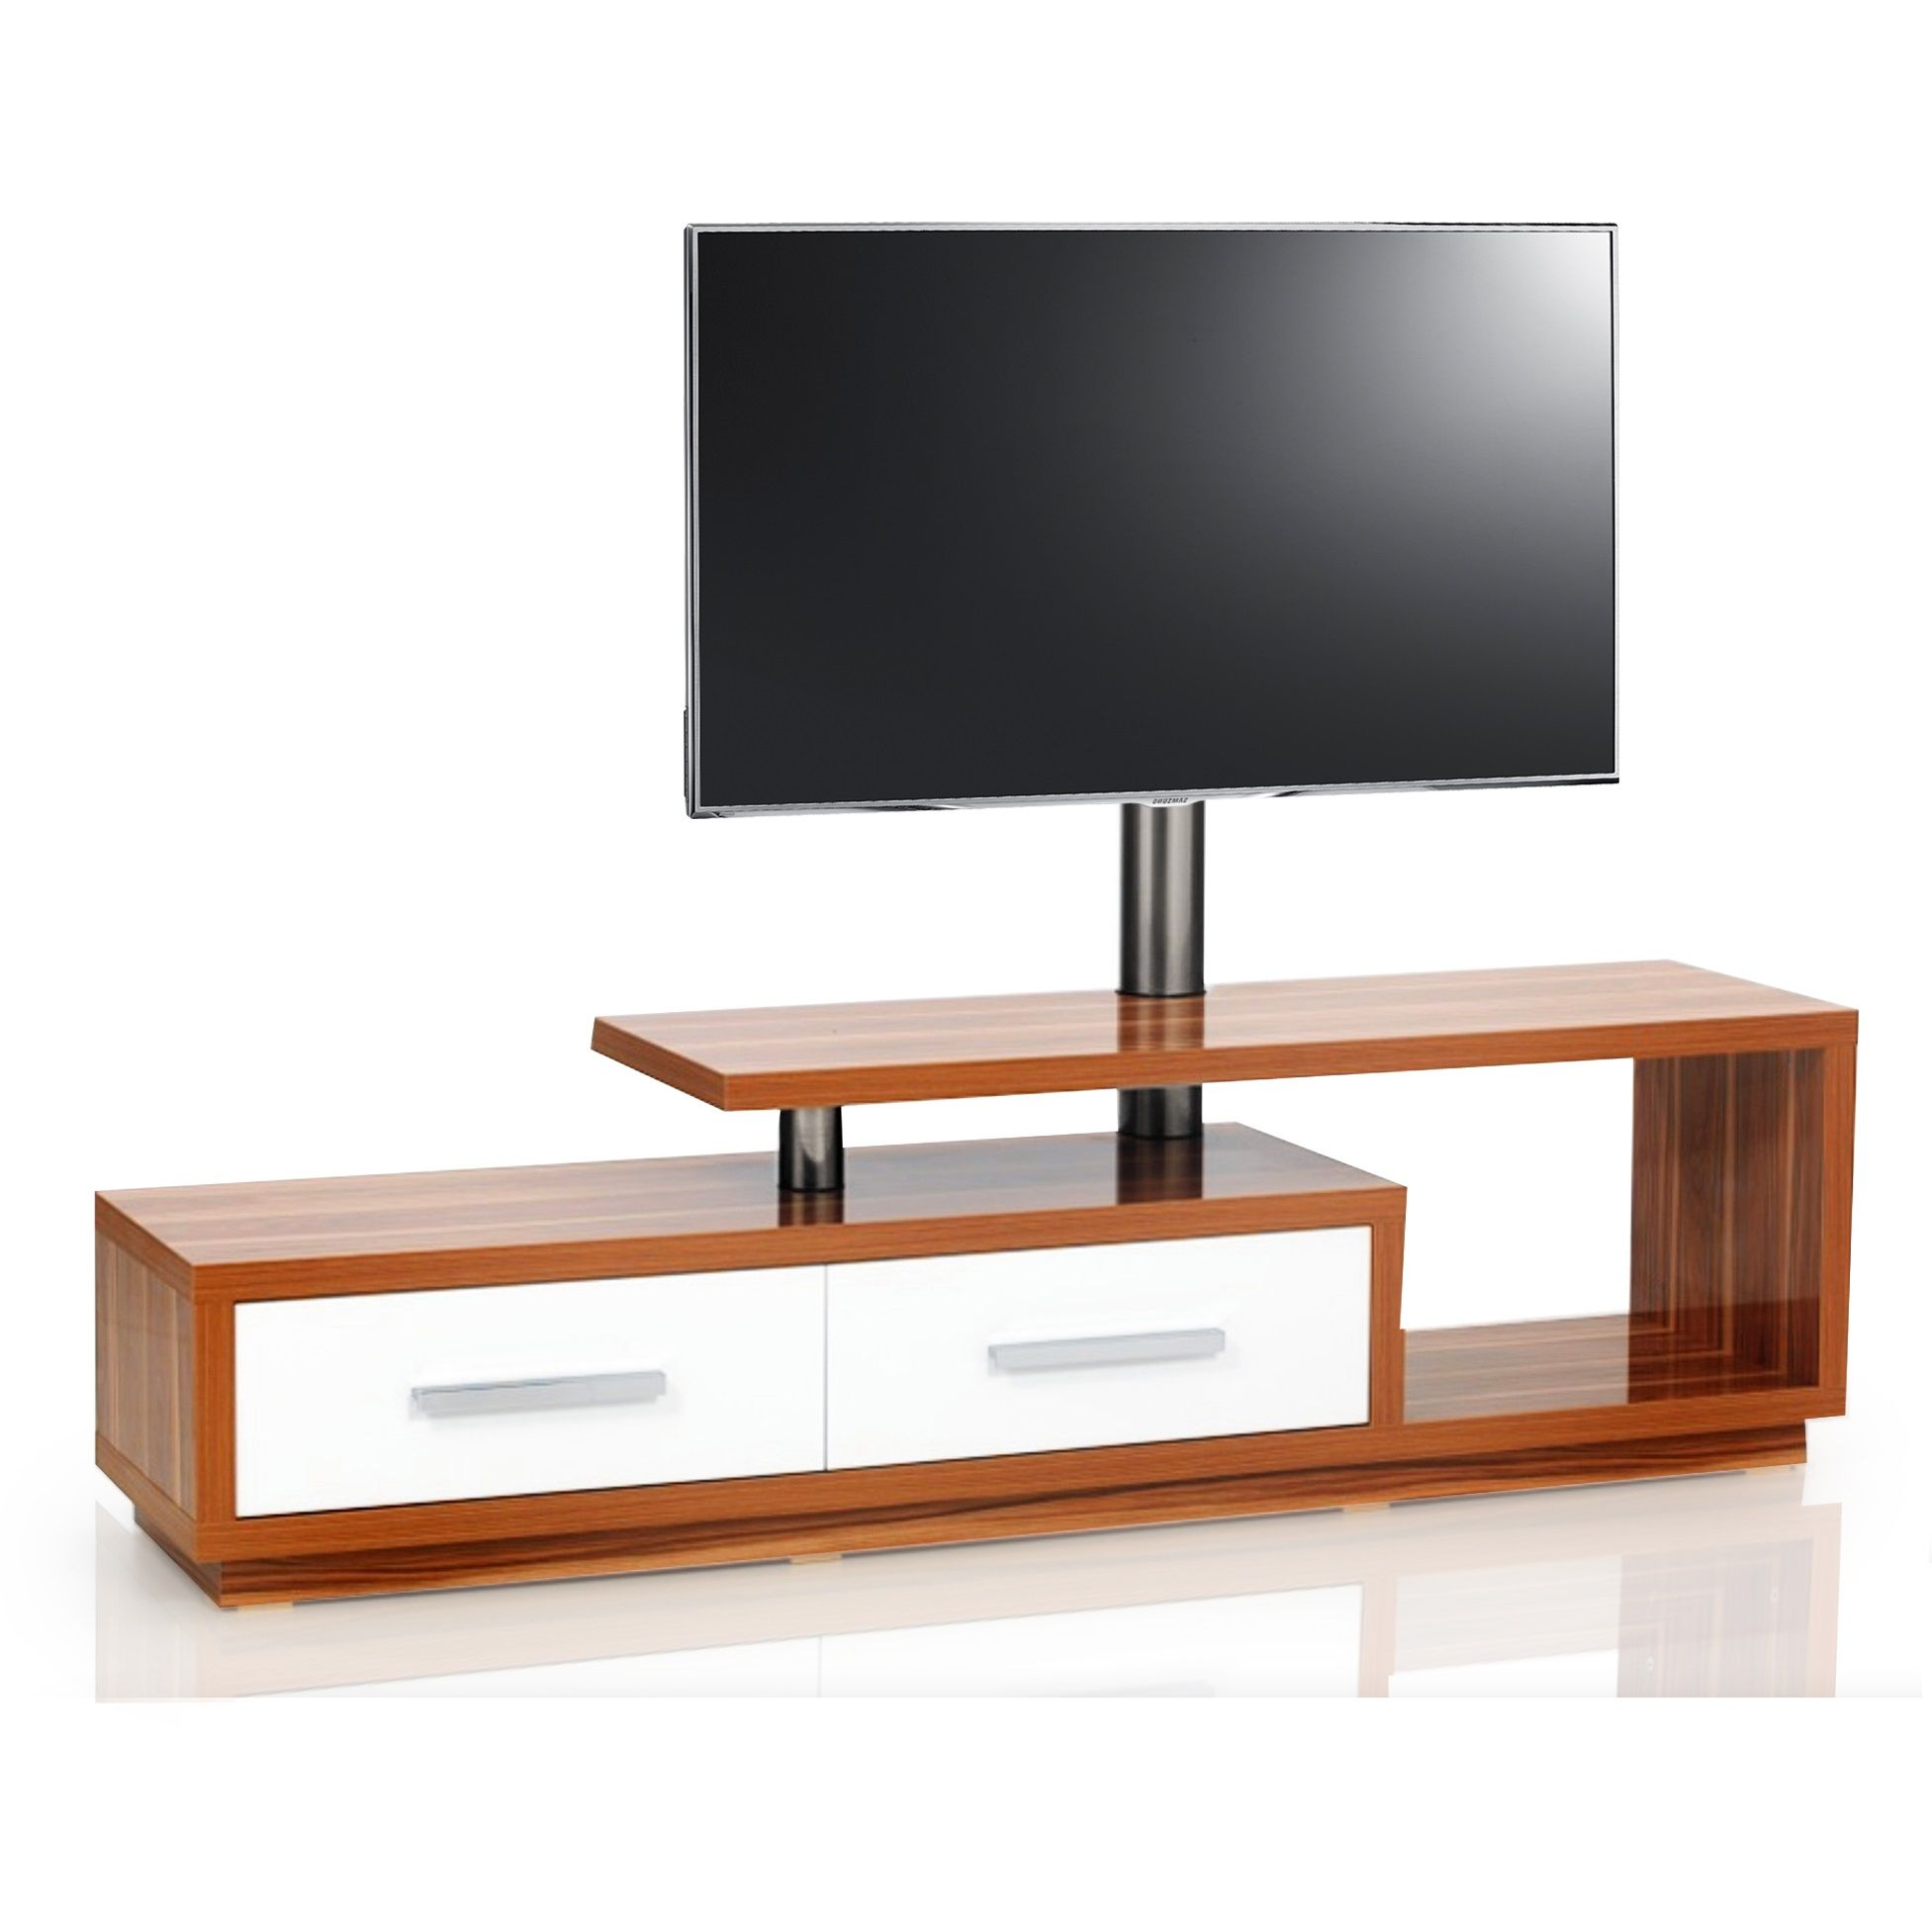 Recherche Meuble Tv - R Sultat De Recherche D Images Pour Table De Television Plasma [mjhdah]http://www.matelpro.com/media/catalog/product/cache/1/image/9df78eab33525d08d6e5fb8d27136e95/m/e/meuble_tv_contemporain_ch_ne_truffe-blanc_brillant_delfino.jpg